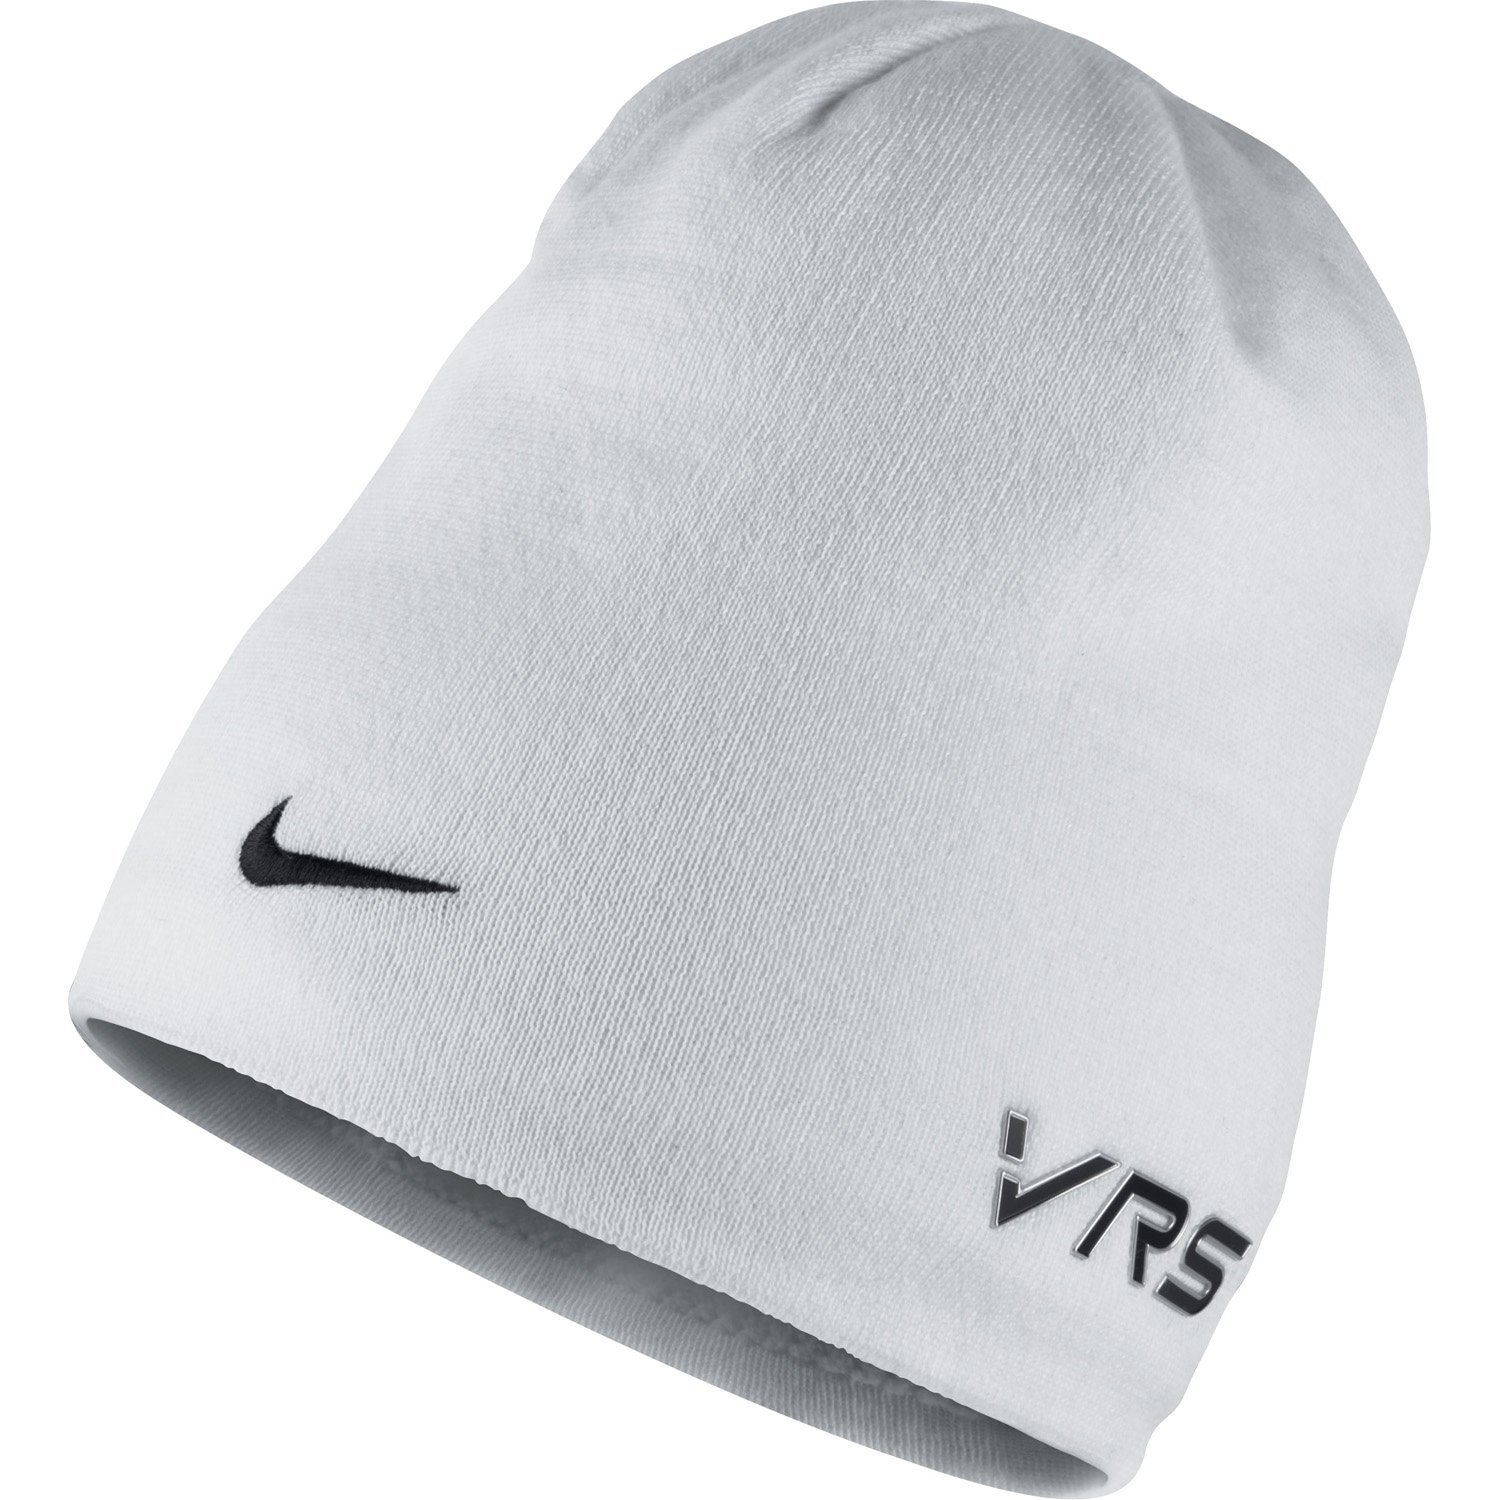 43638e3c Mens Nike Golf Tour Knit Beanie Hats